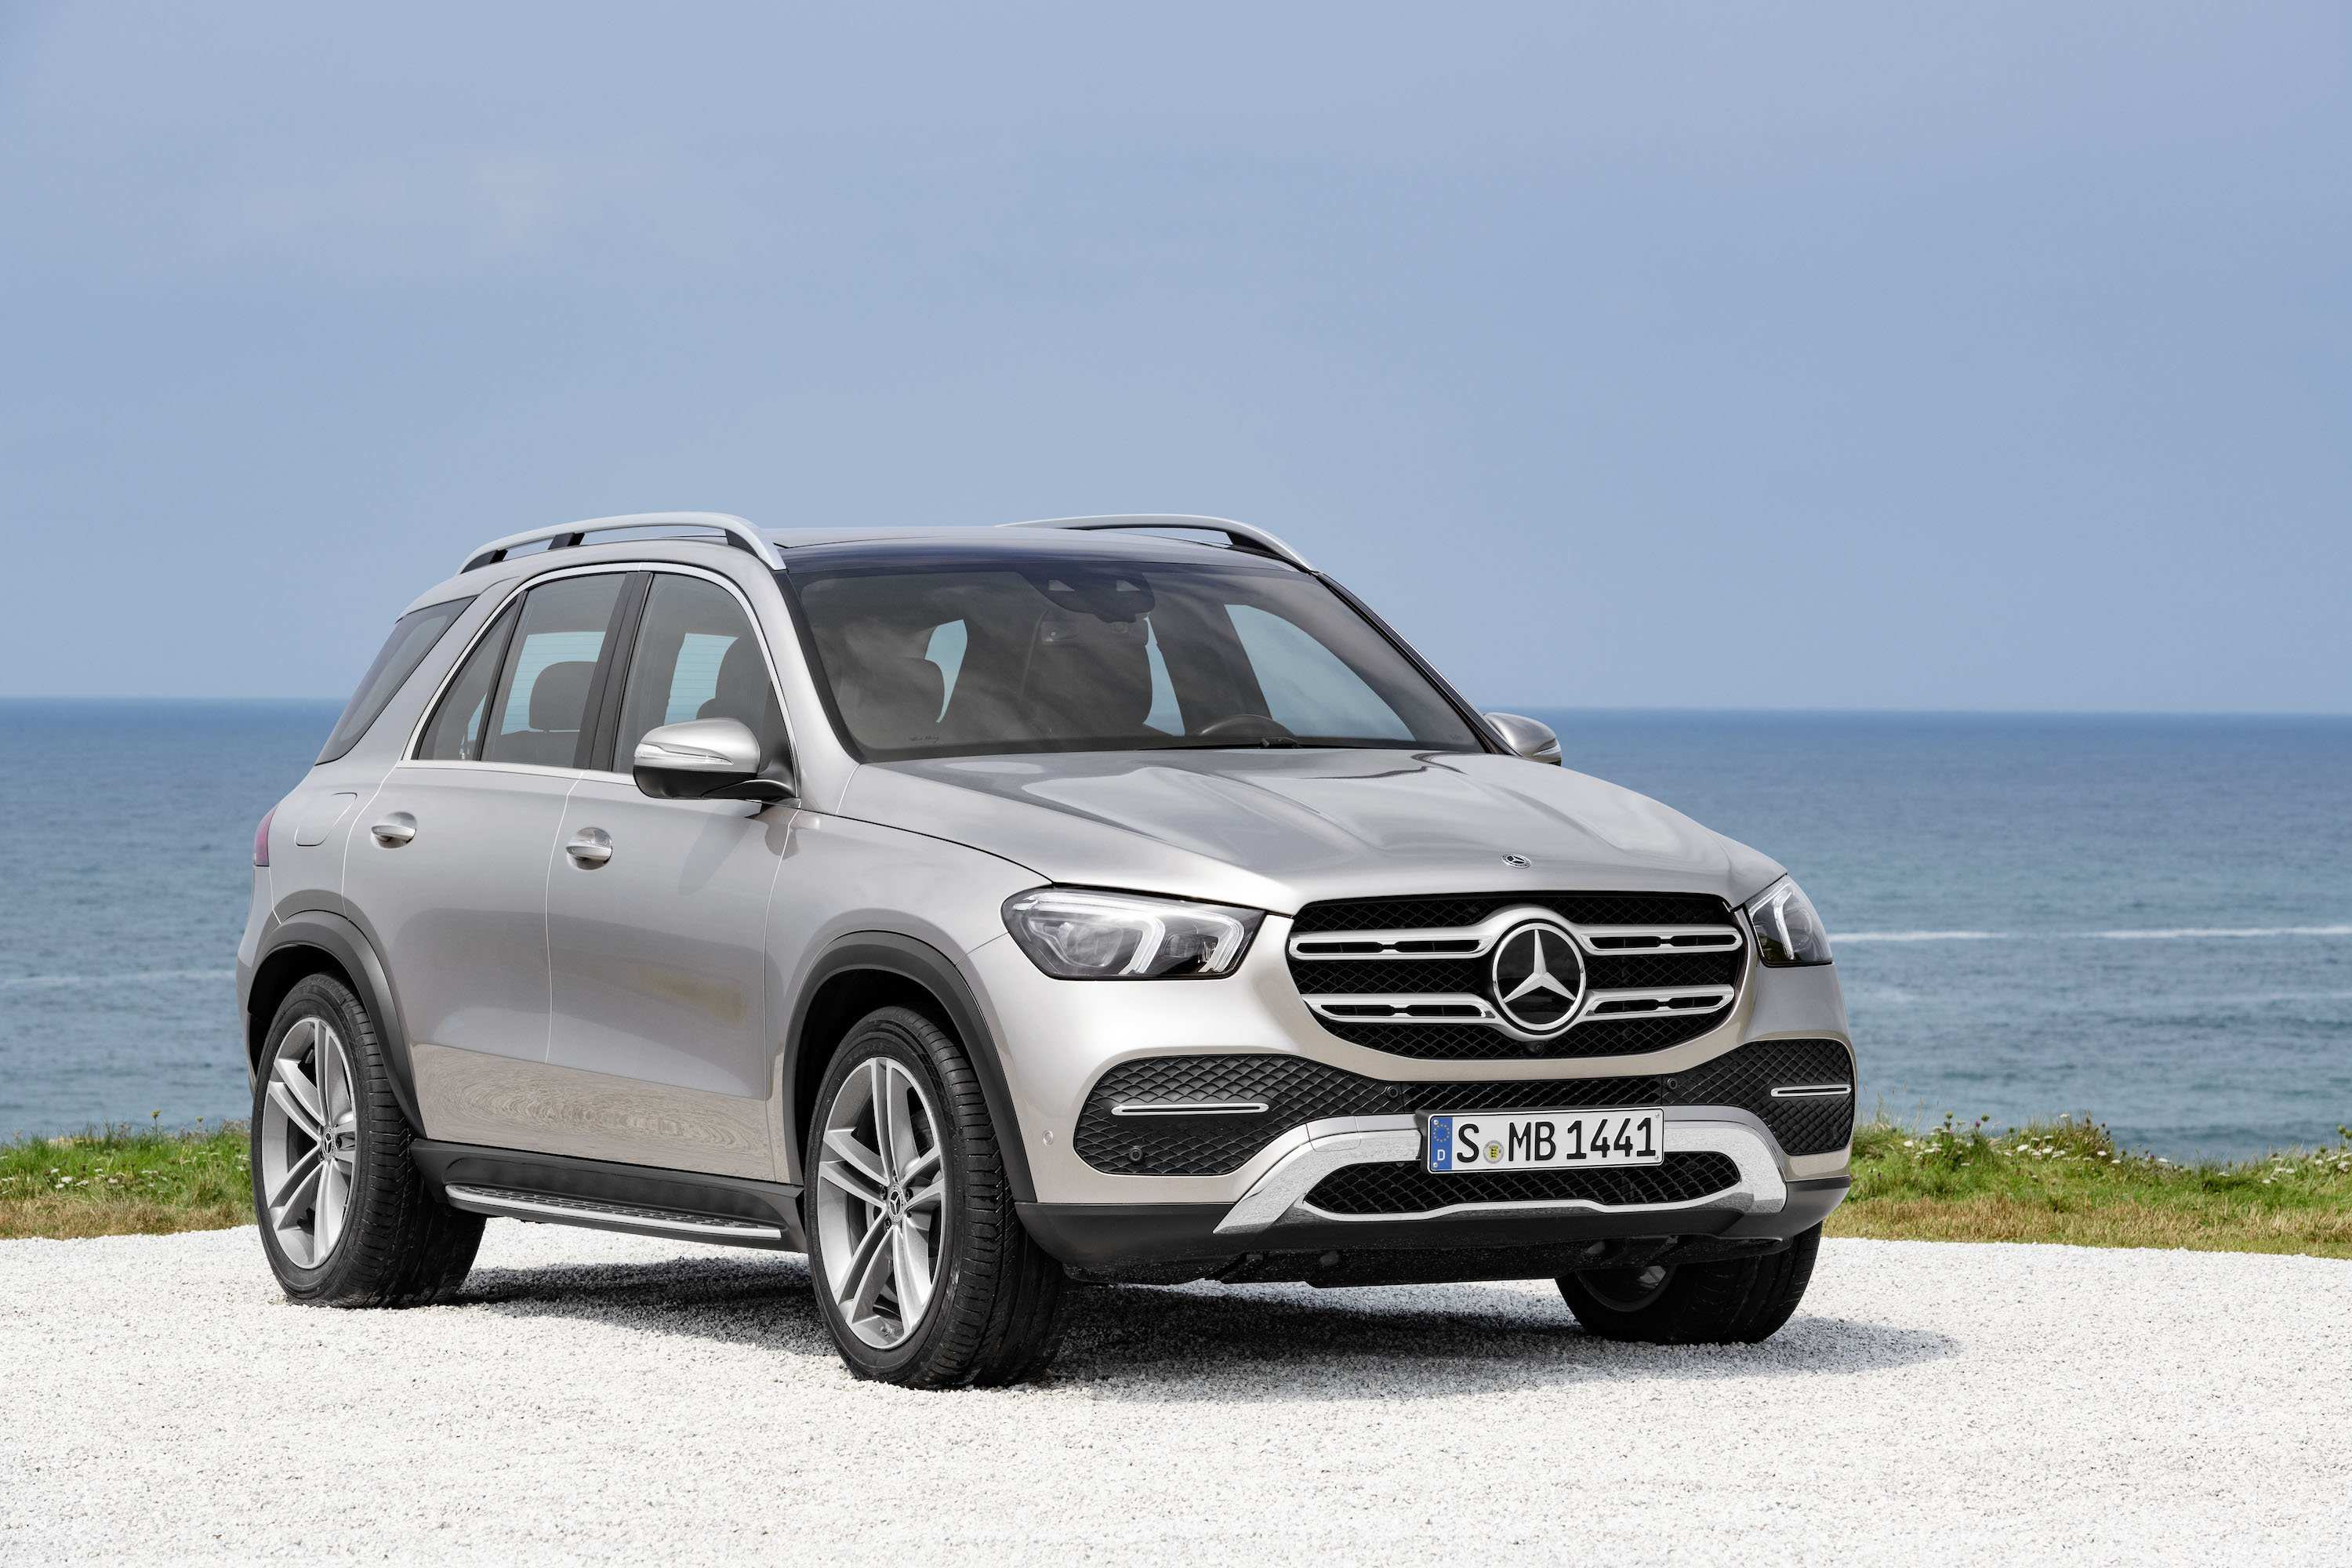 93 New Mercedes Ml 2020 Ratings for Mercedes Ml 2020